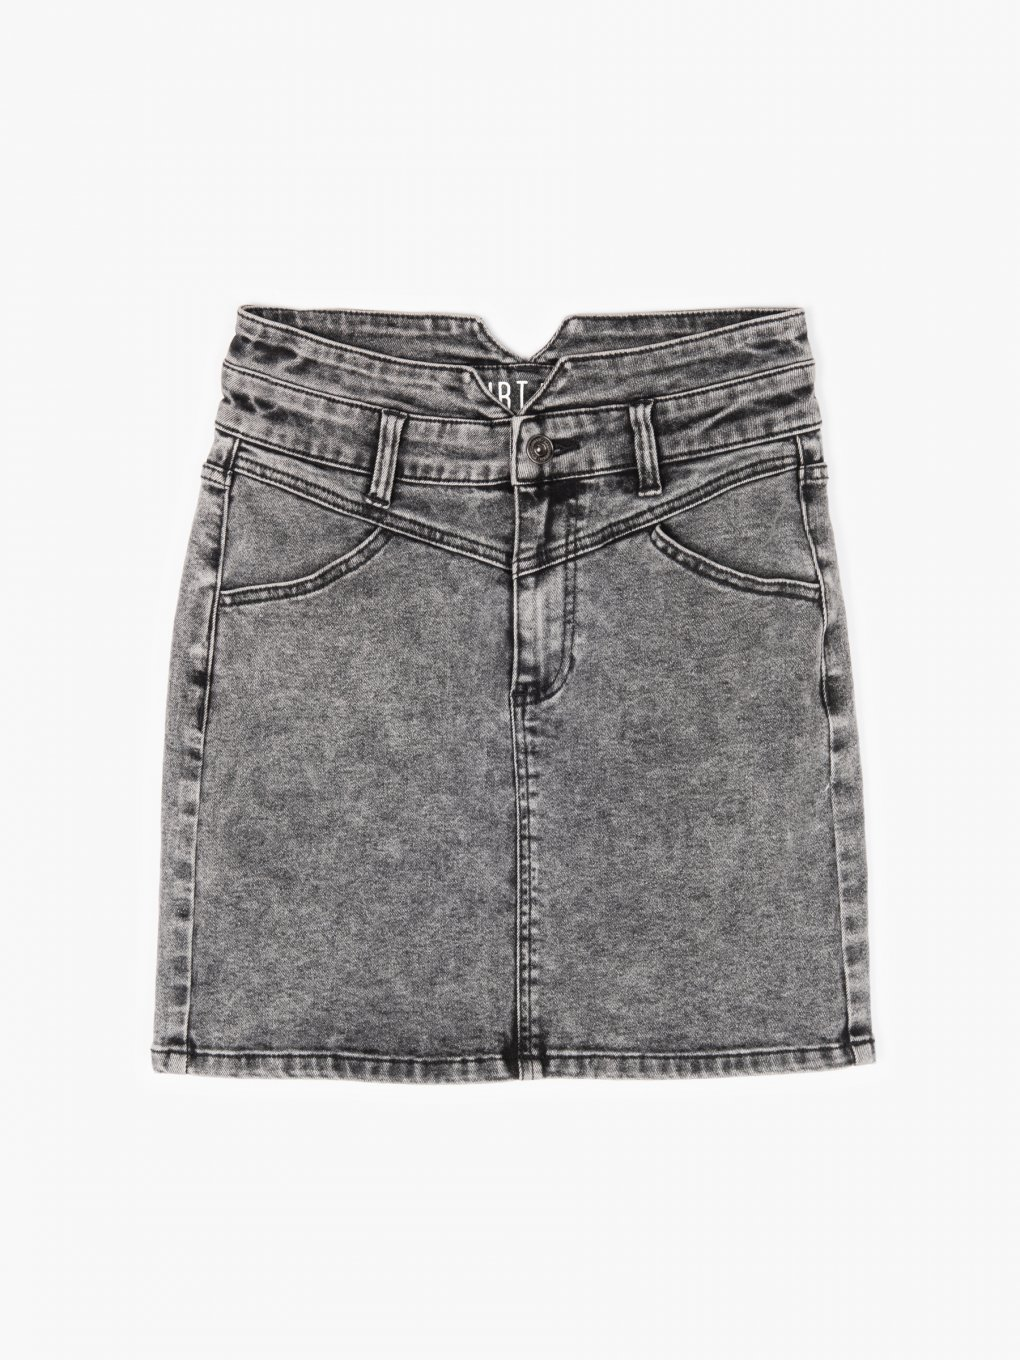 Acid wash denim mini skirt